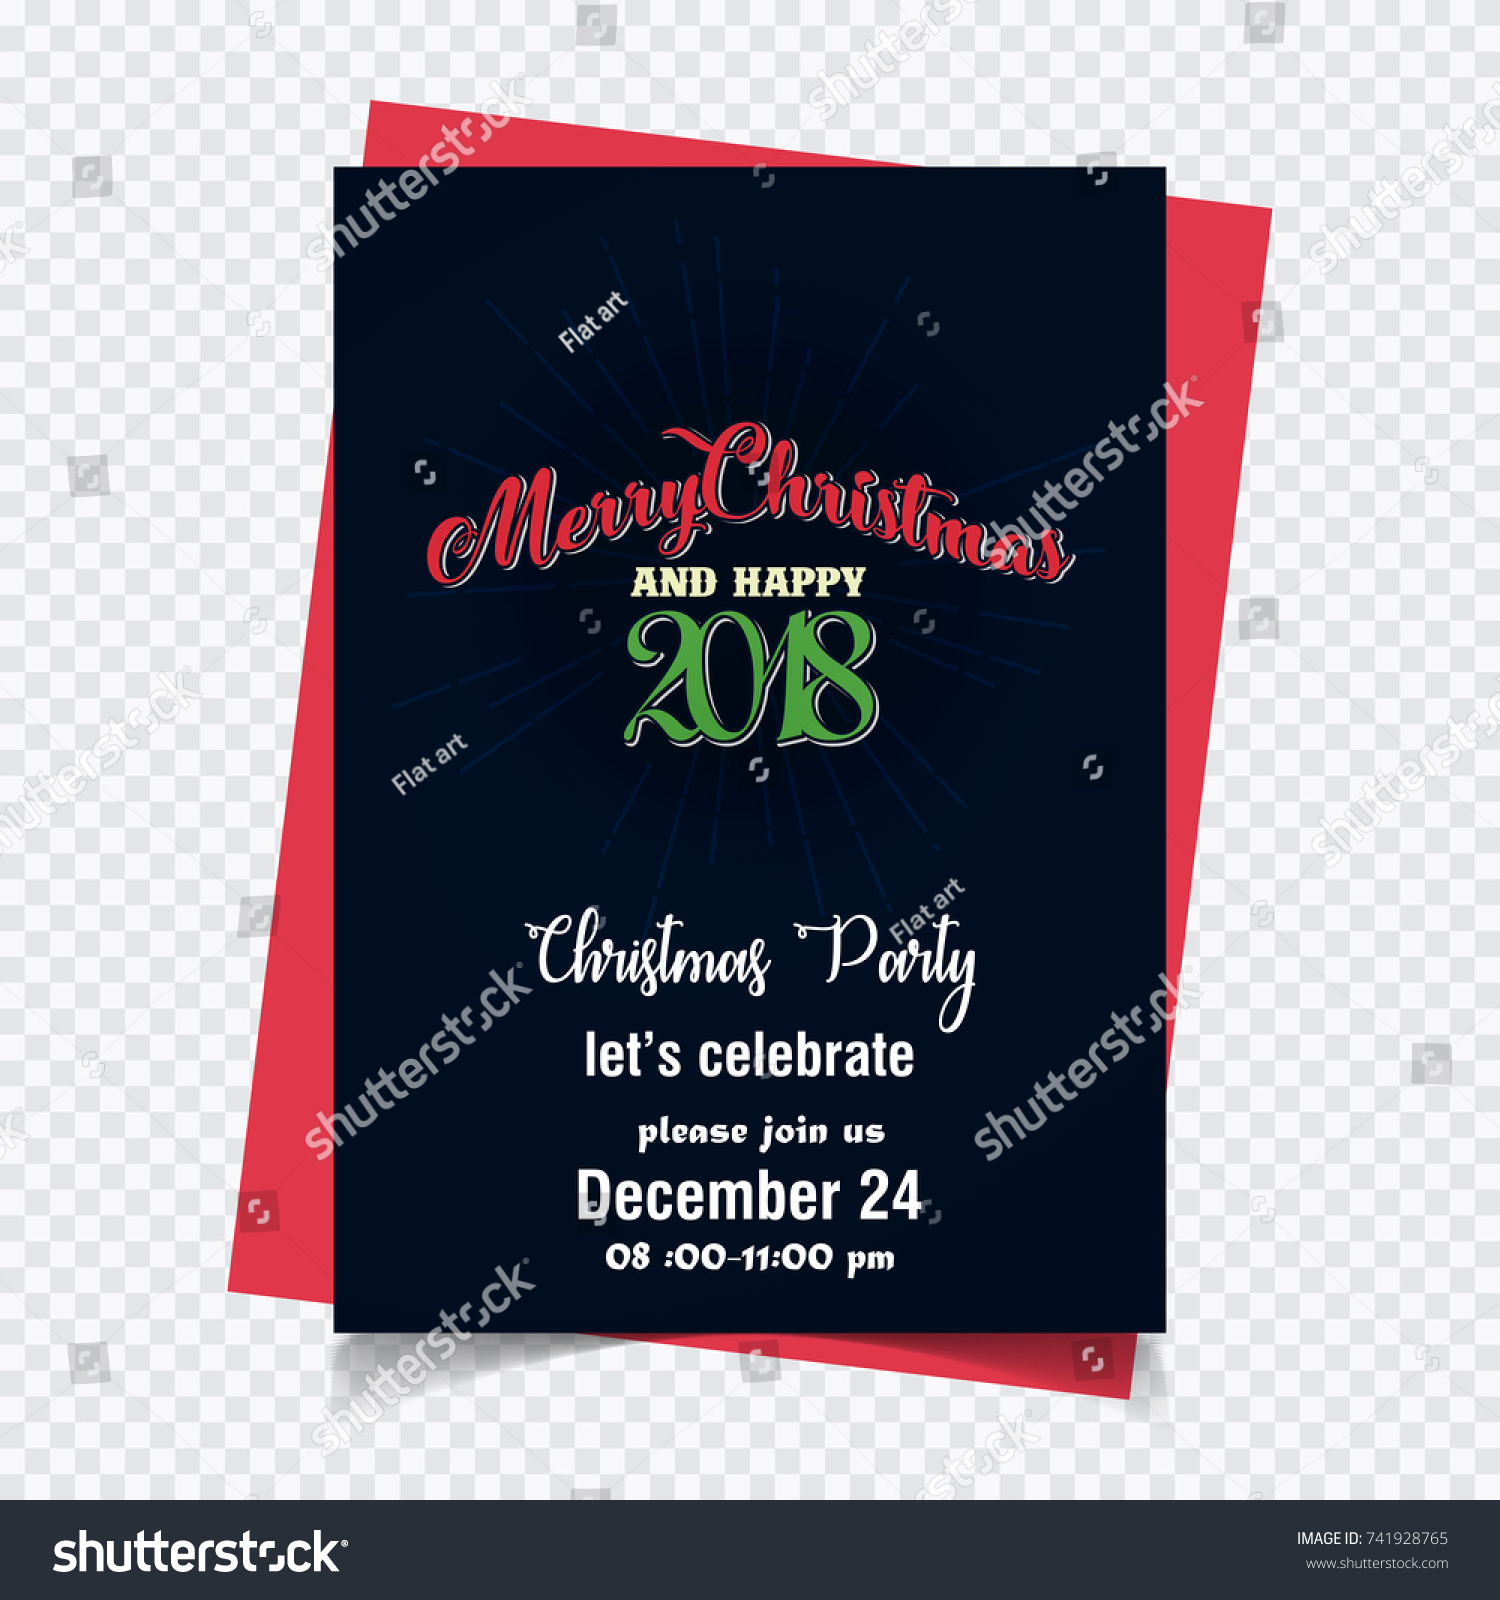 New Creative Merry Christmas Happy 2018 Stock Vector 741928765 ...